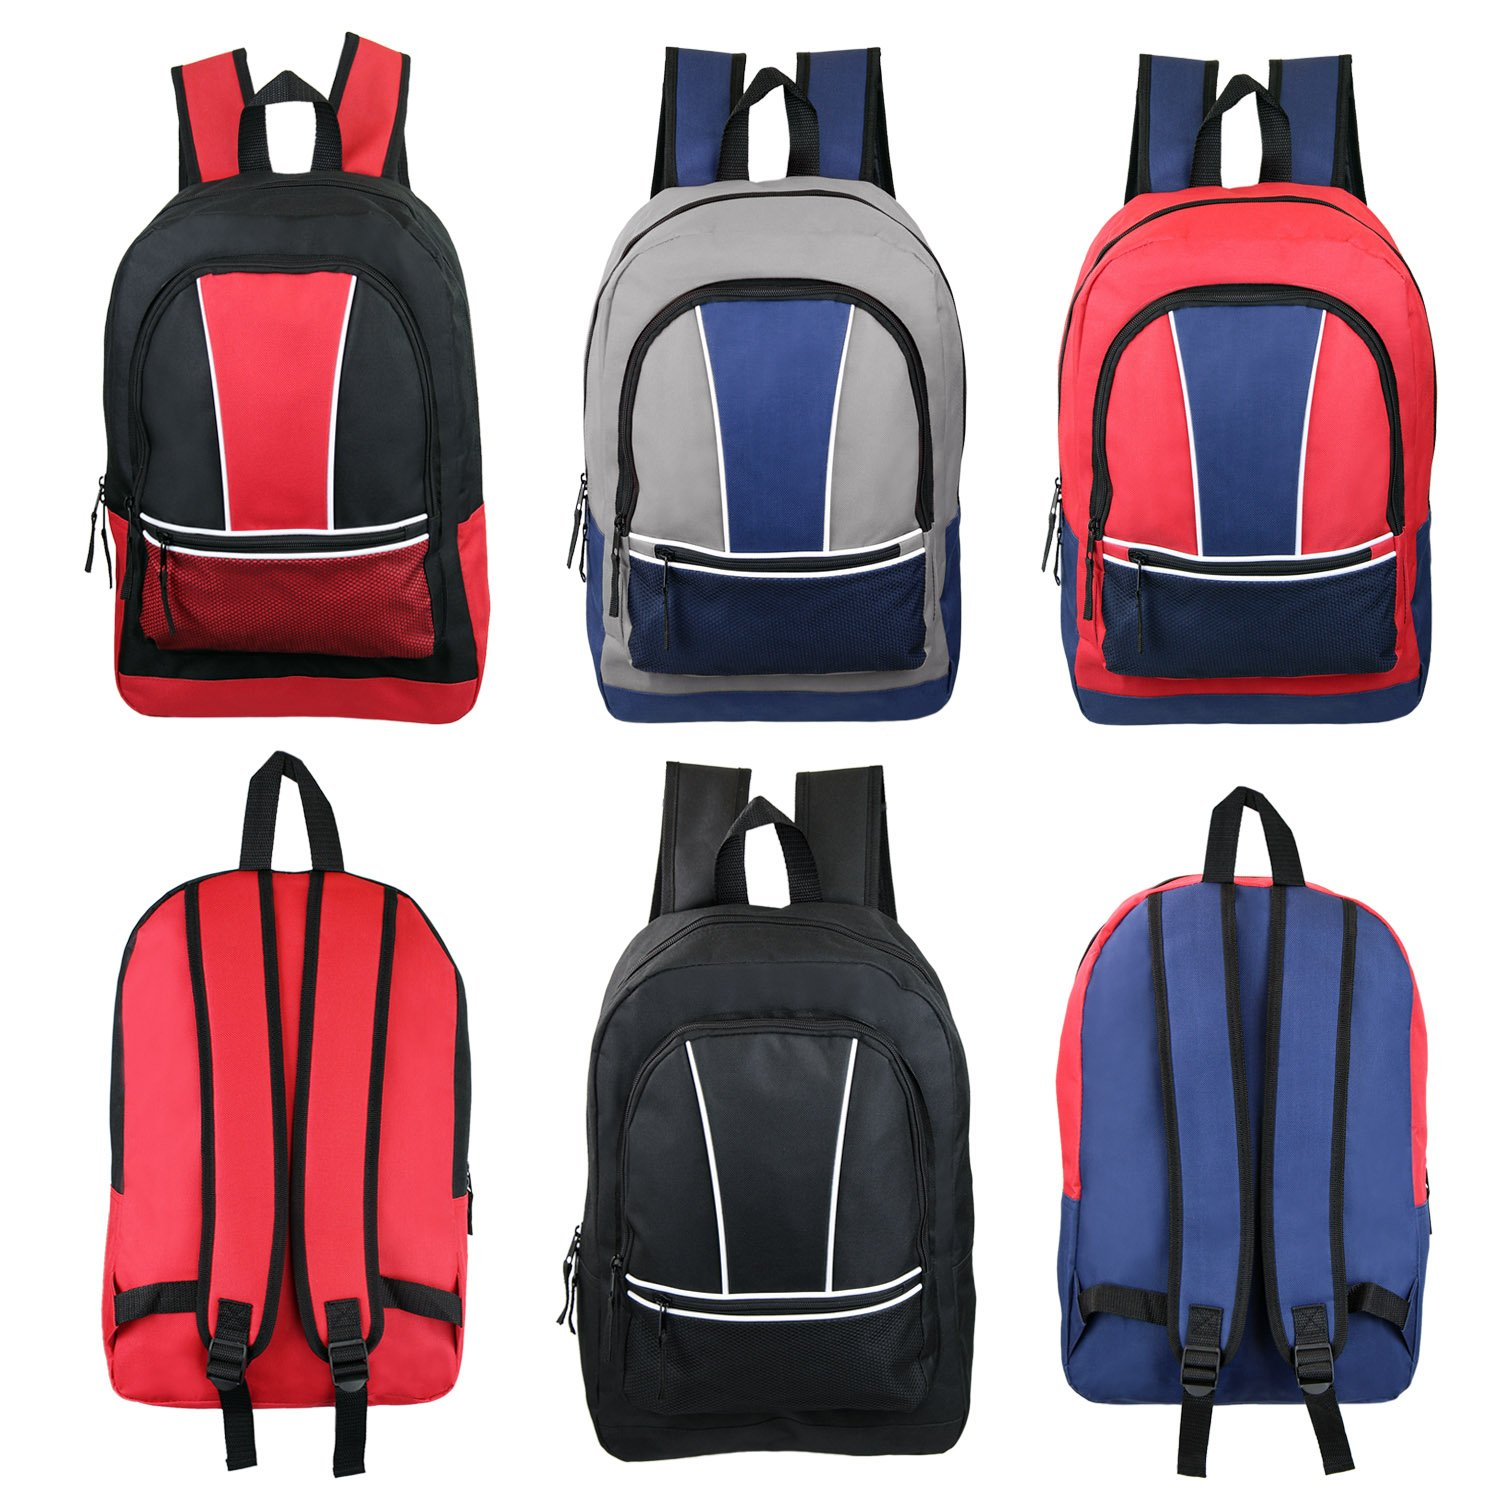 17'' Wholesale Kids Sport Backpacks in 4 Assorted Colors - Bulk Case of 24 Bookbags